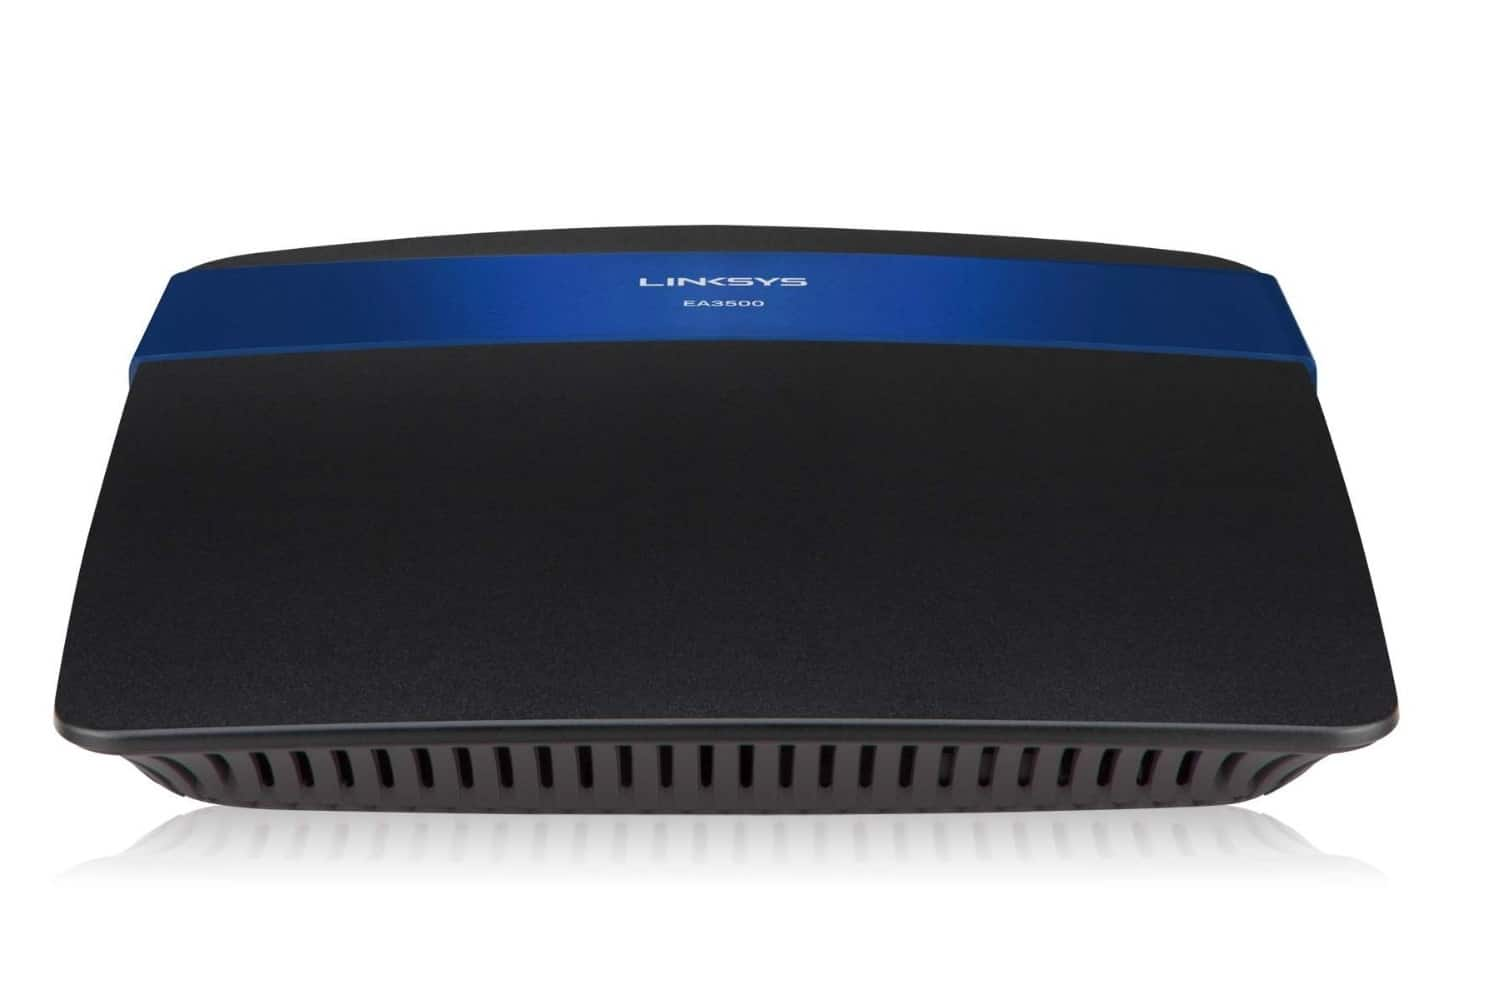 Linksys N750 Dual Band Smart Wireless Router w/ 4-Port Gigabit Ethernet Switch :: $39.99 + Free S&H :: Amazon